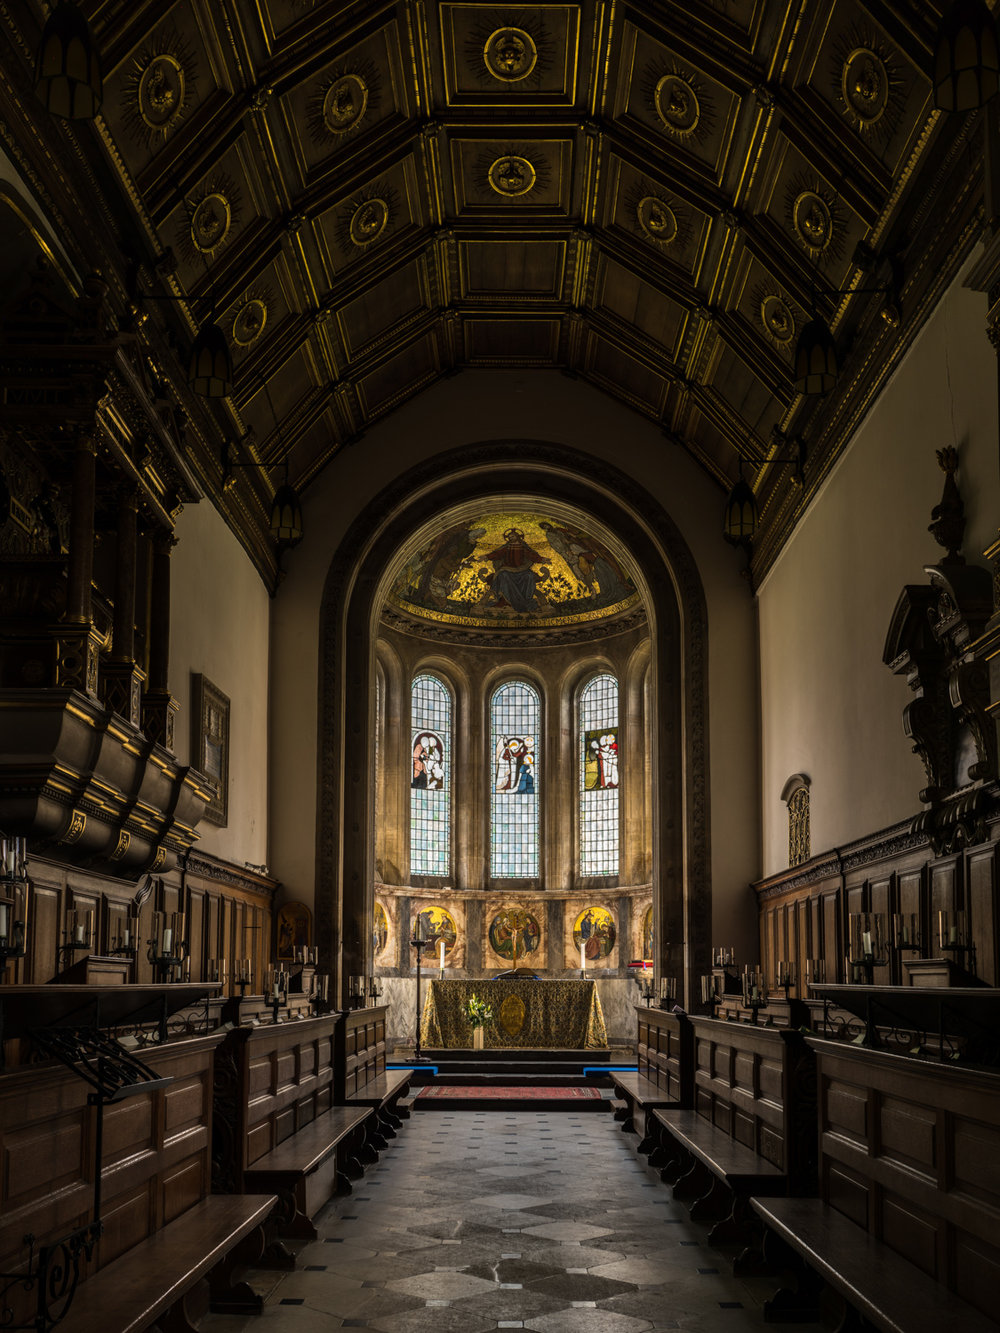 My first experiment with High Resolution mode - Gonville and Caius College Chapel, Cambridge